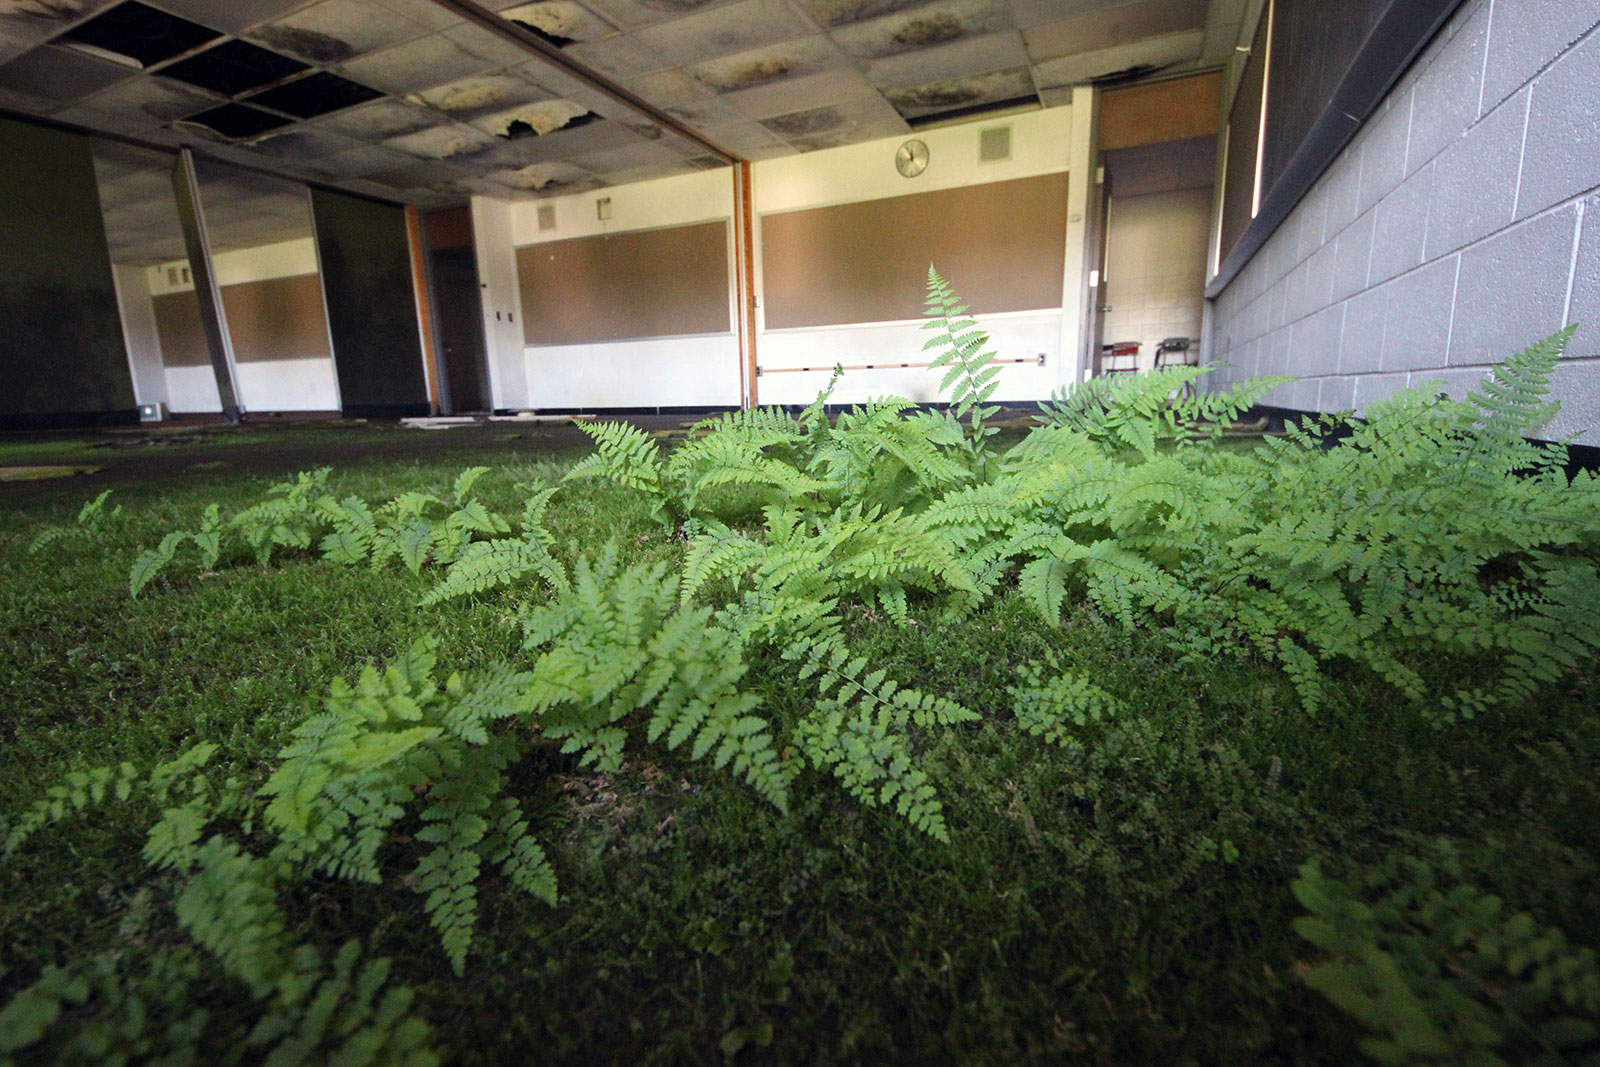 Ferns on the Floor in an Abandoned School by Courtney Celley